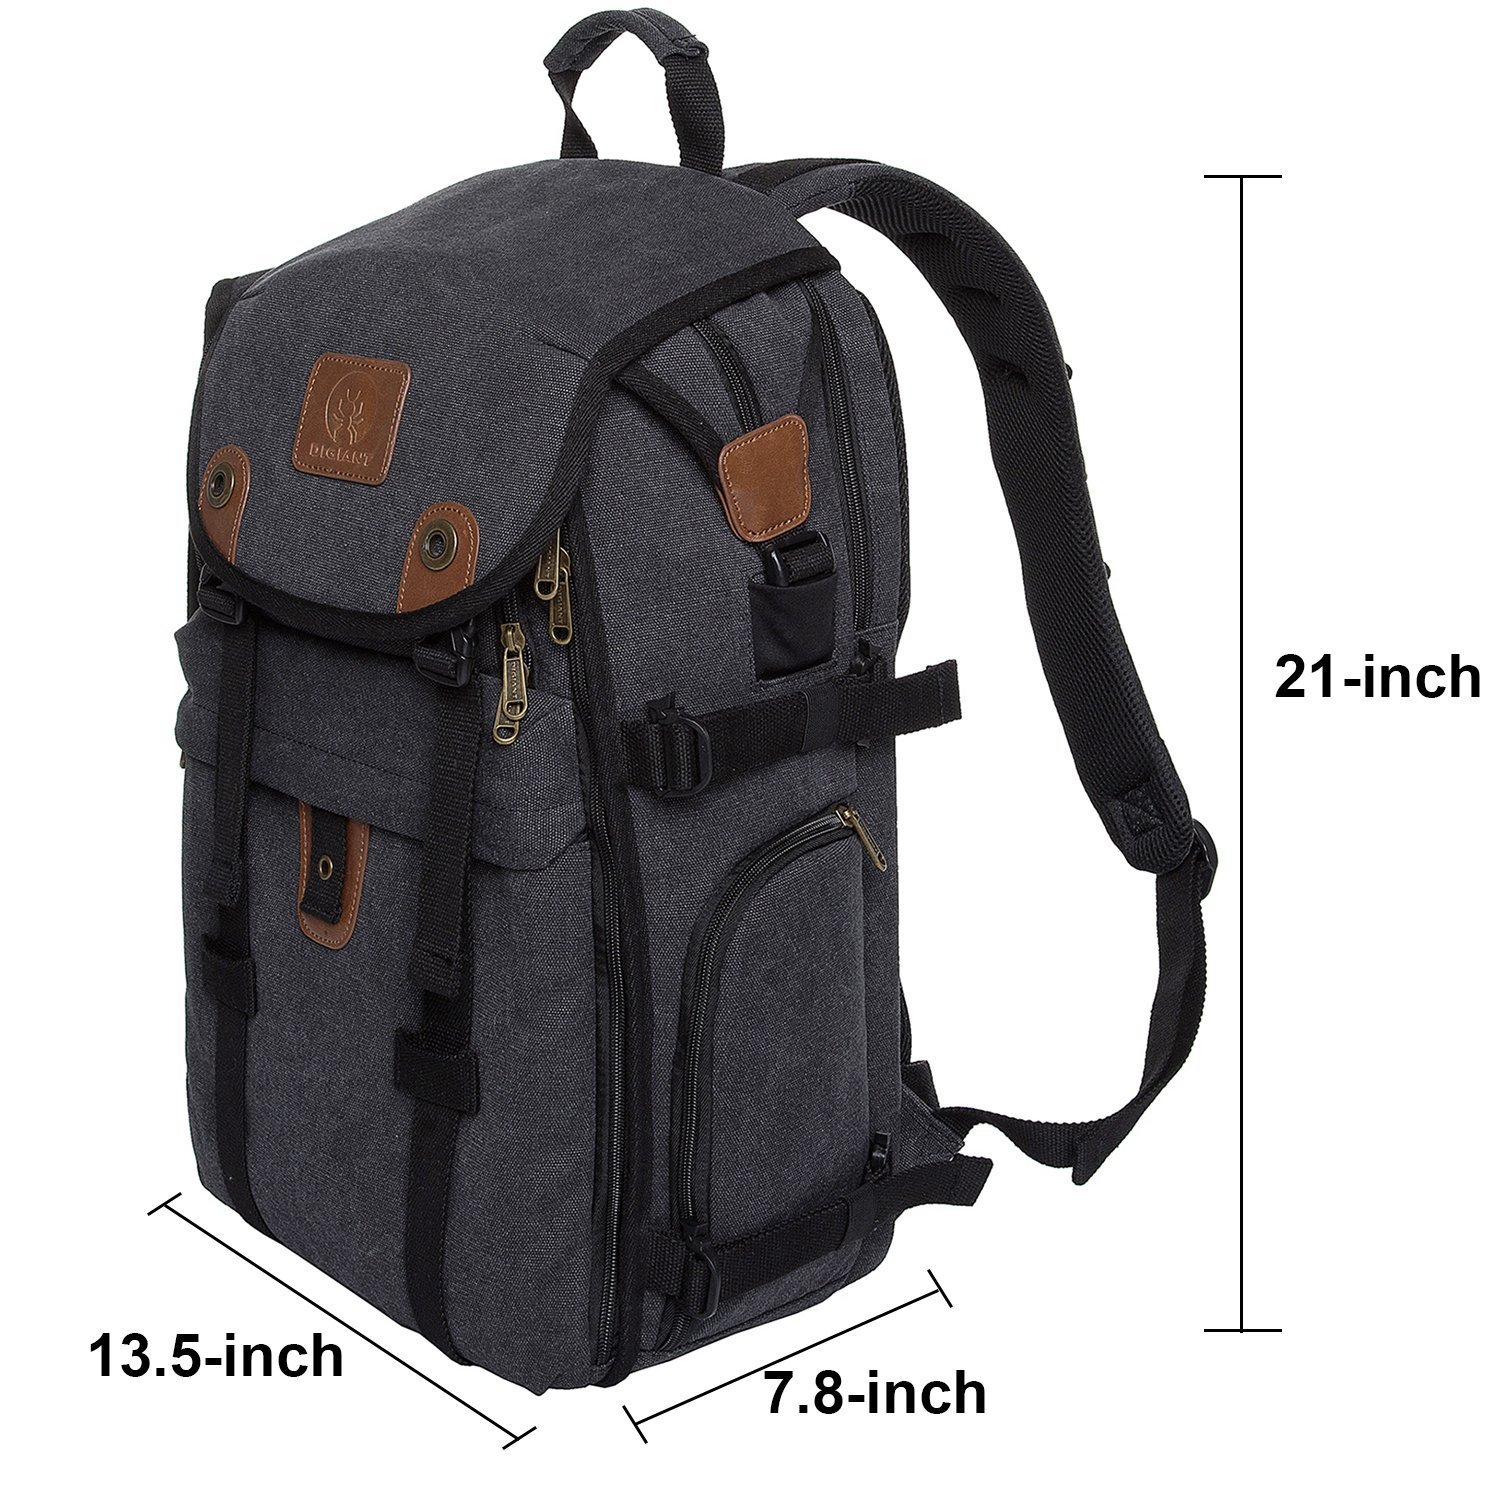 DSLR Camera Backpack, 21 inch Canvas Camera Bag with 15.6'' Laptop/Tablet Compartment and Rain Cover